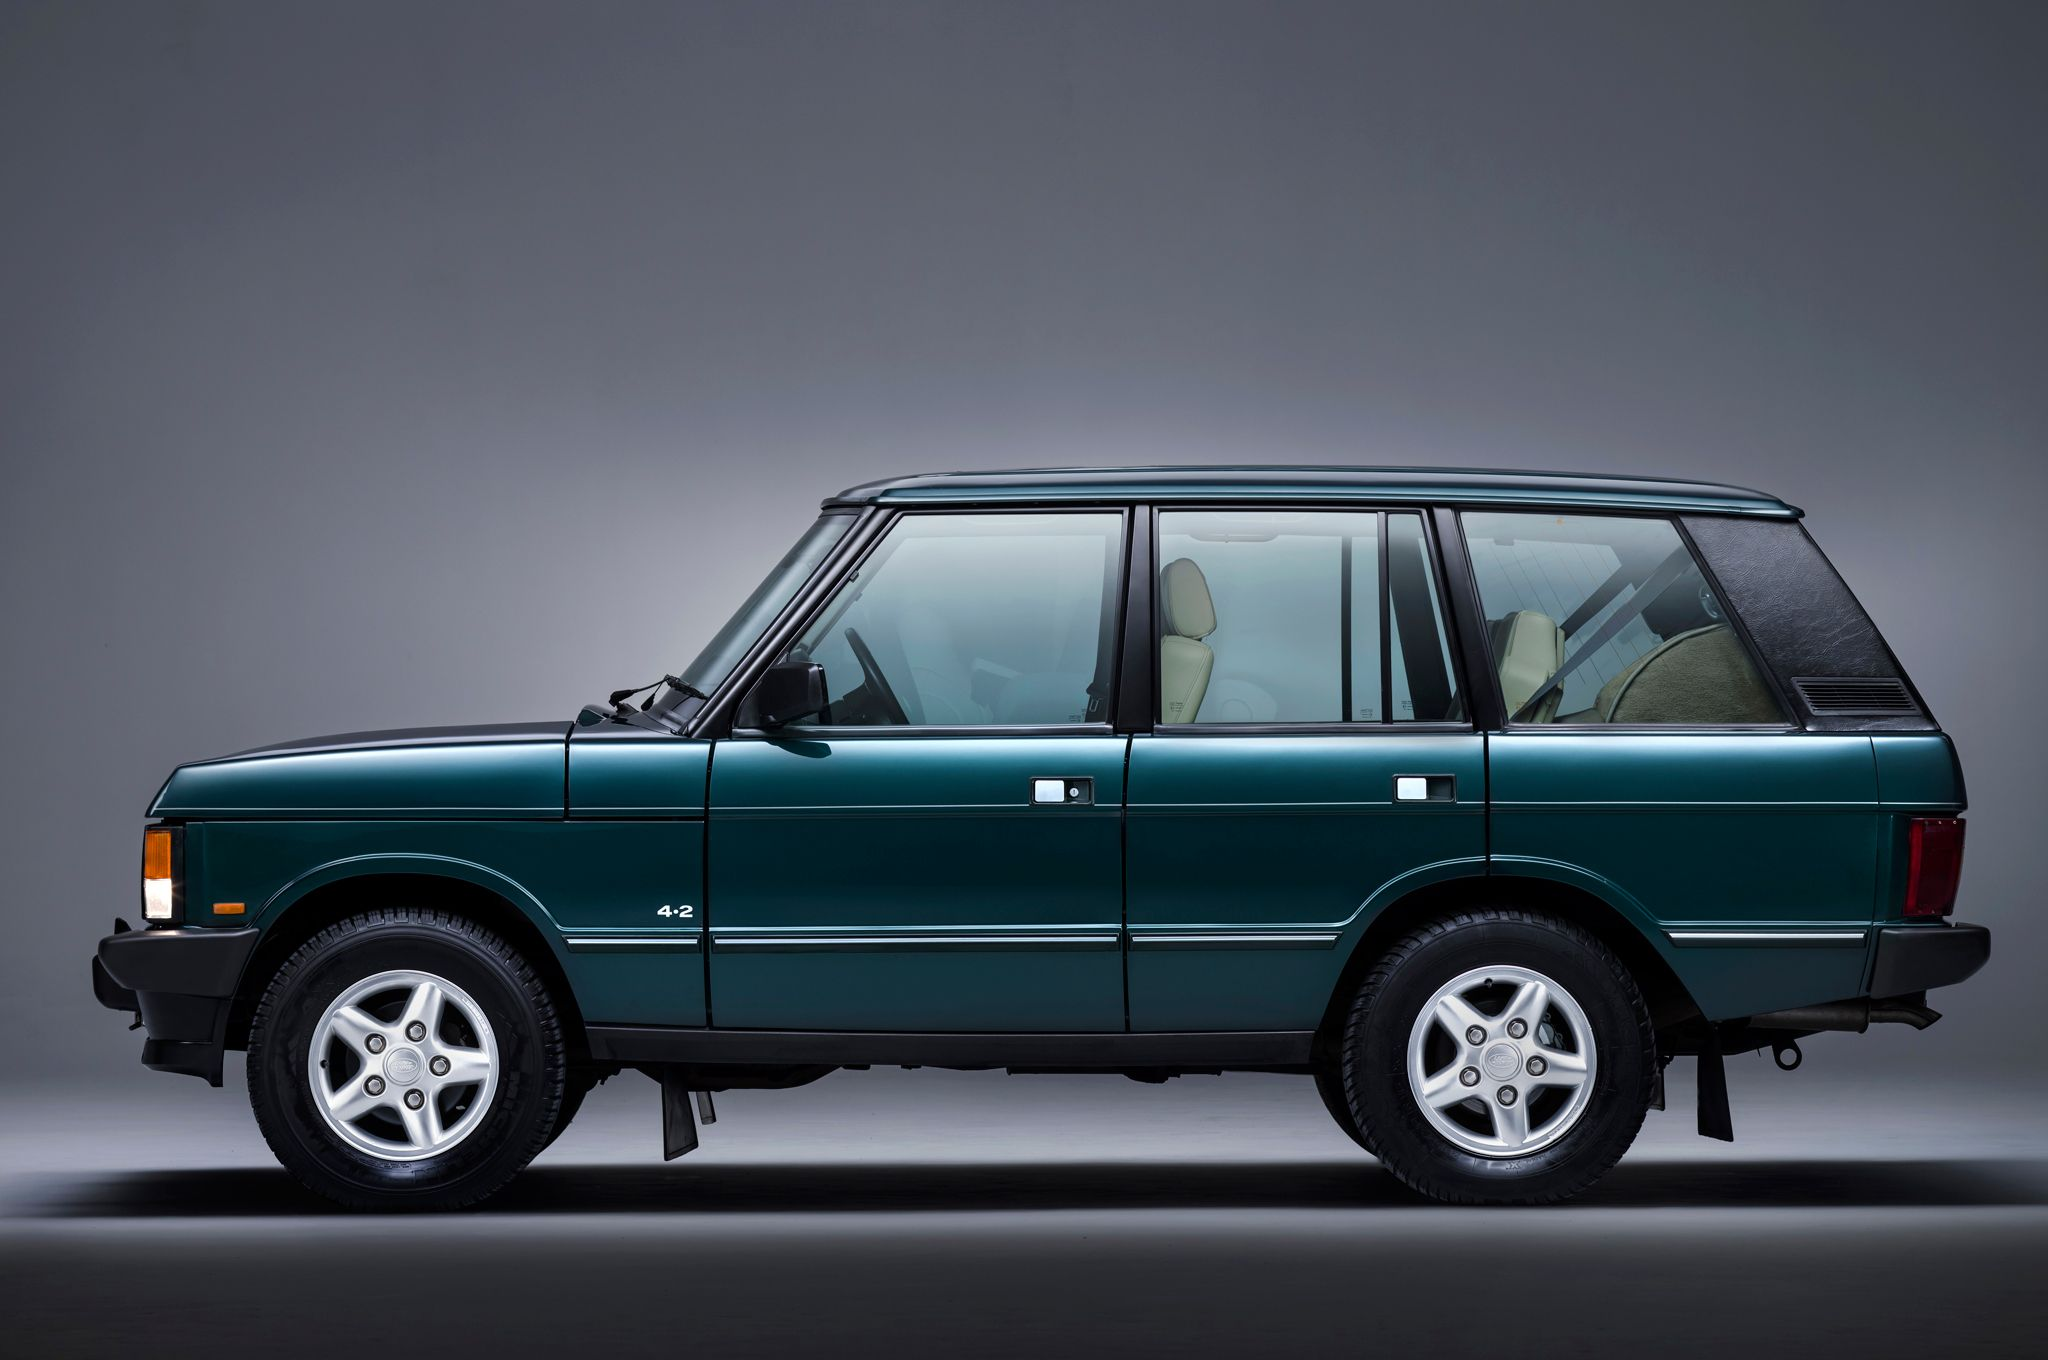 1994 Land Rover Range Rover Autobiography side